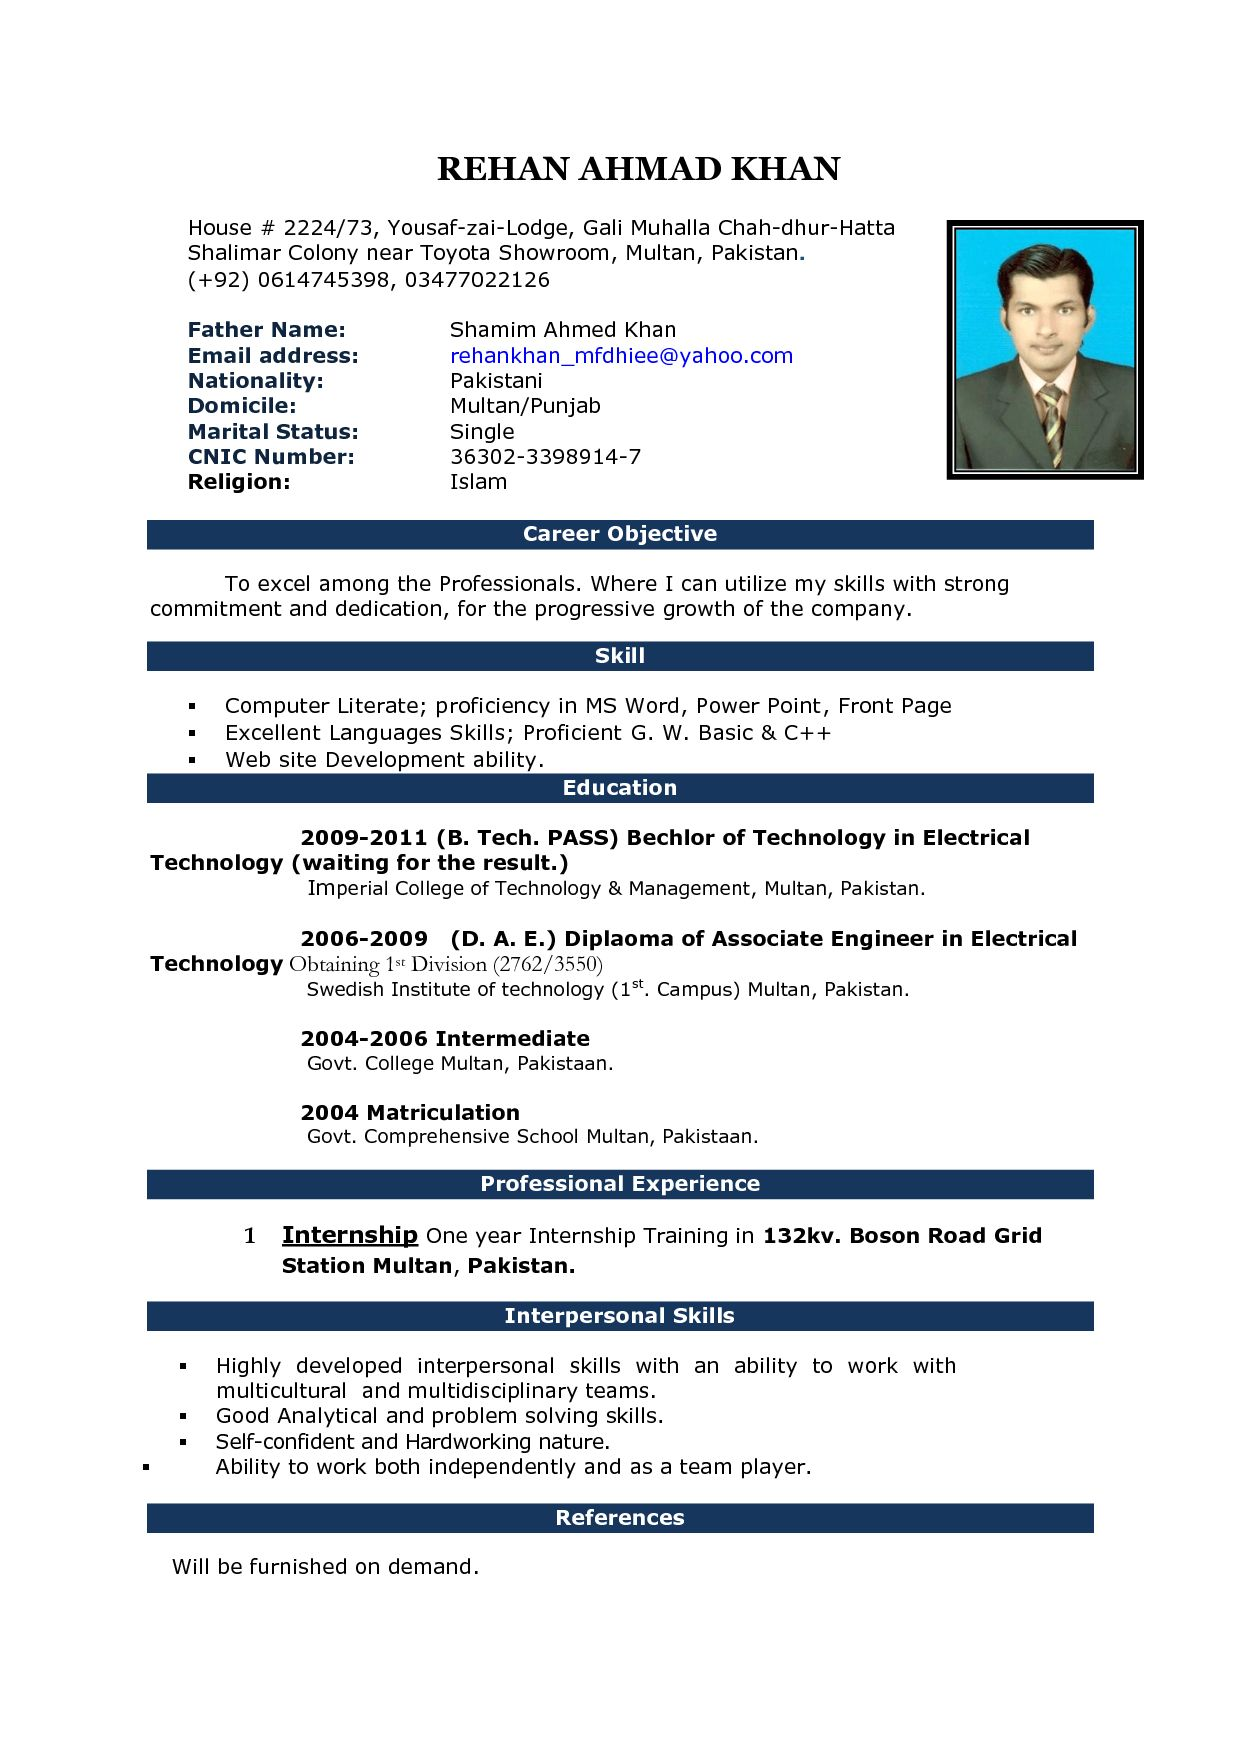 pin on cv standard resume template word technician example mba motocross another for Resume Standard Resume Template Word